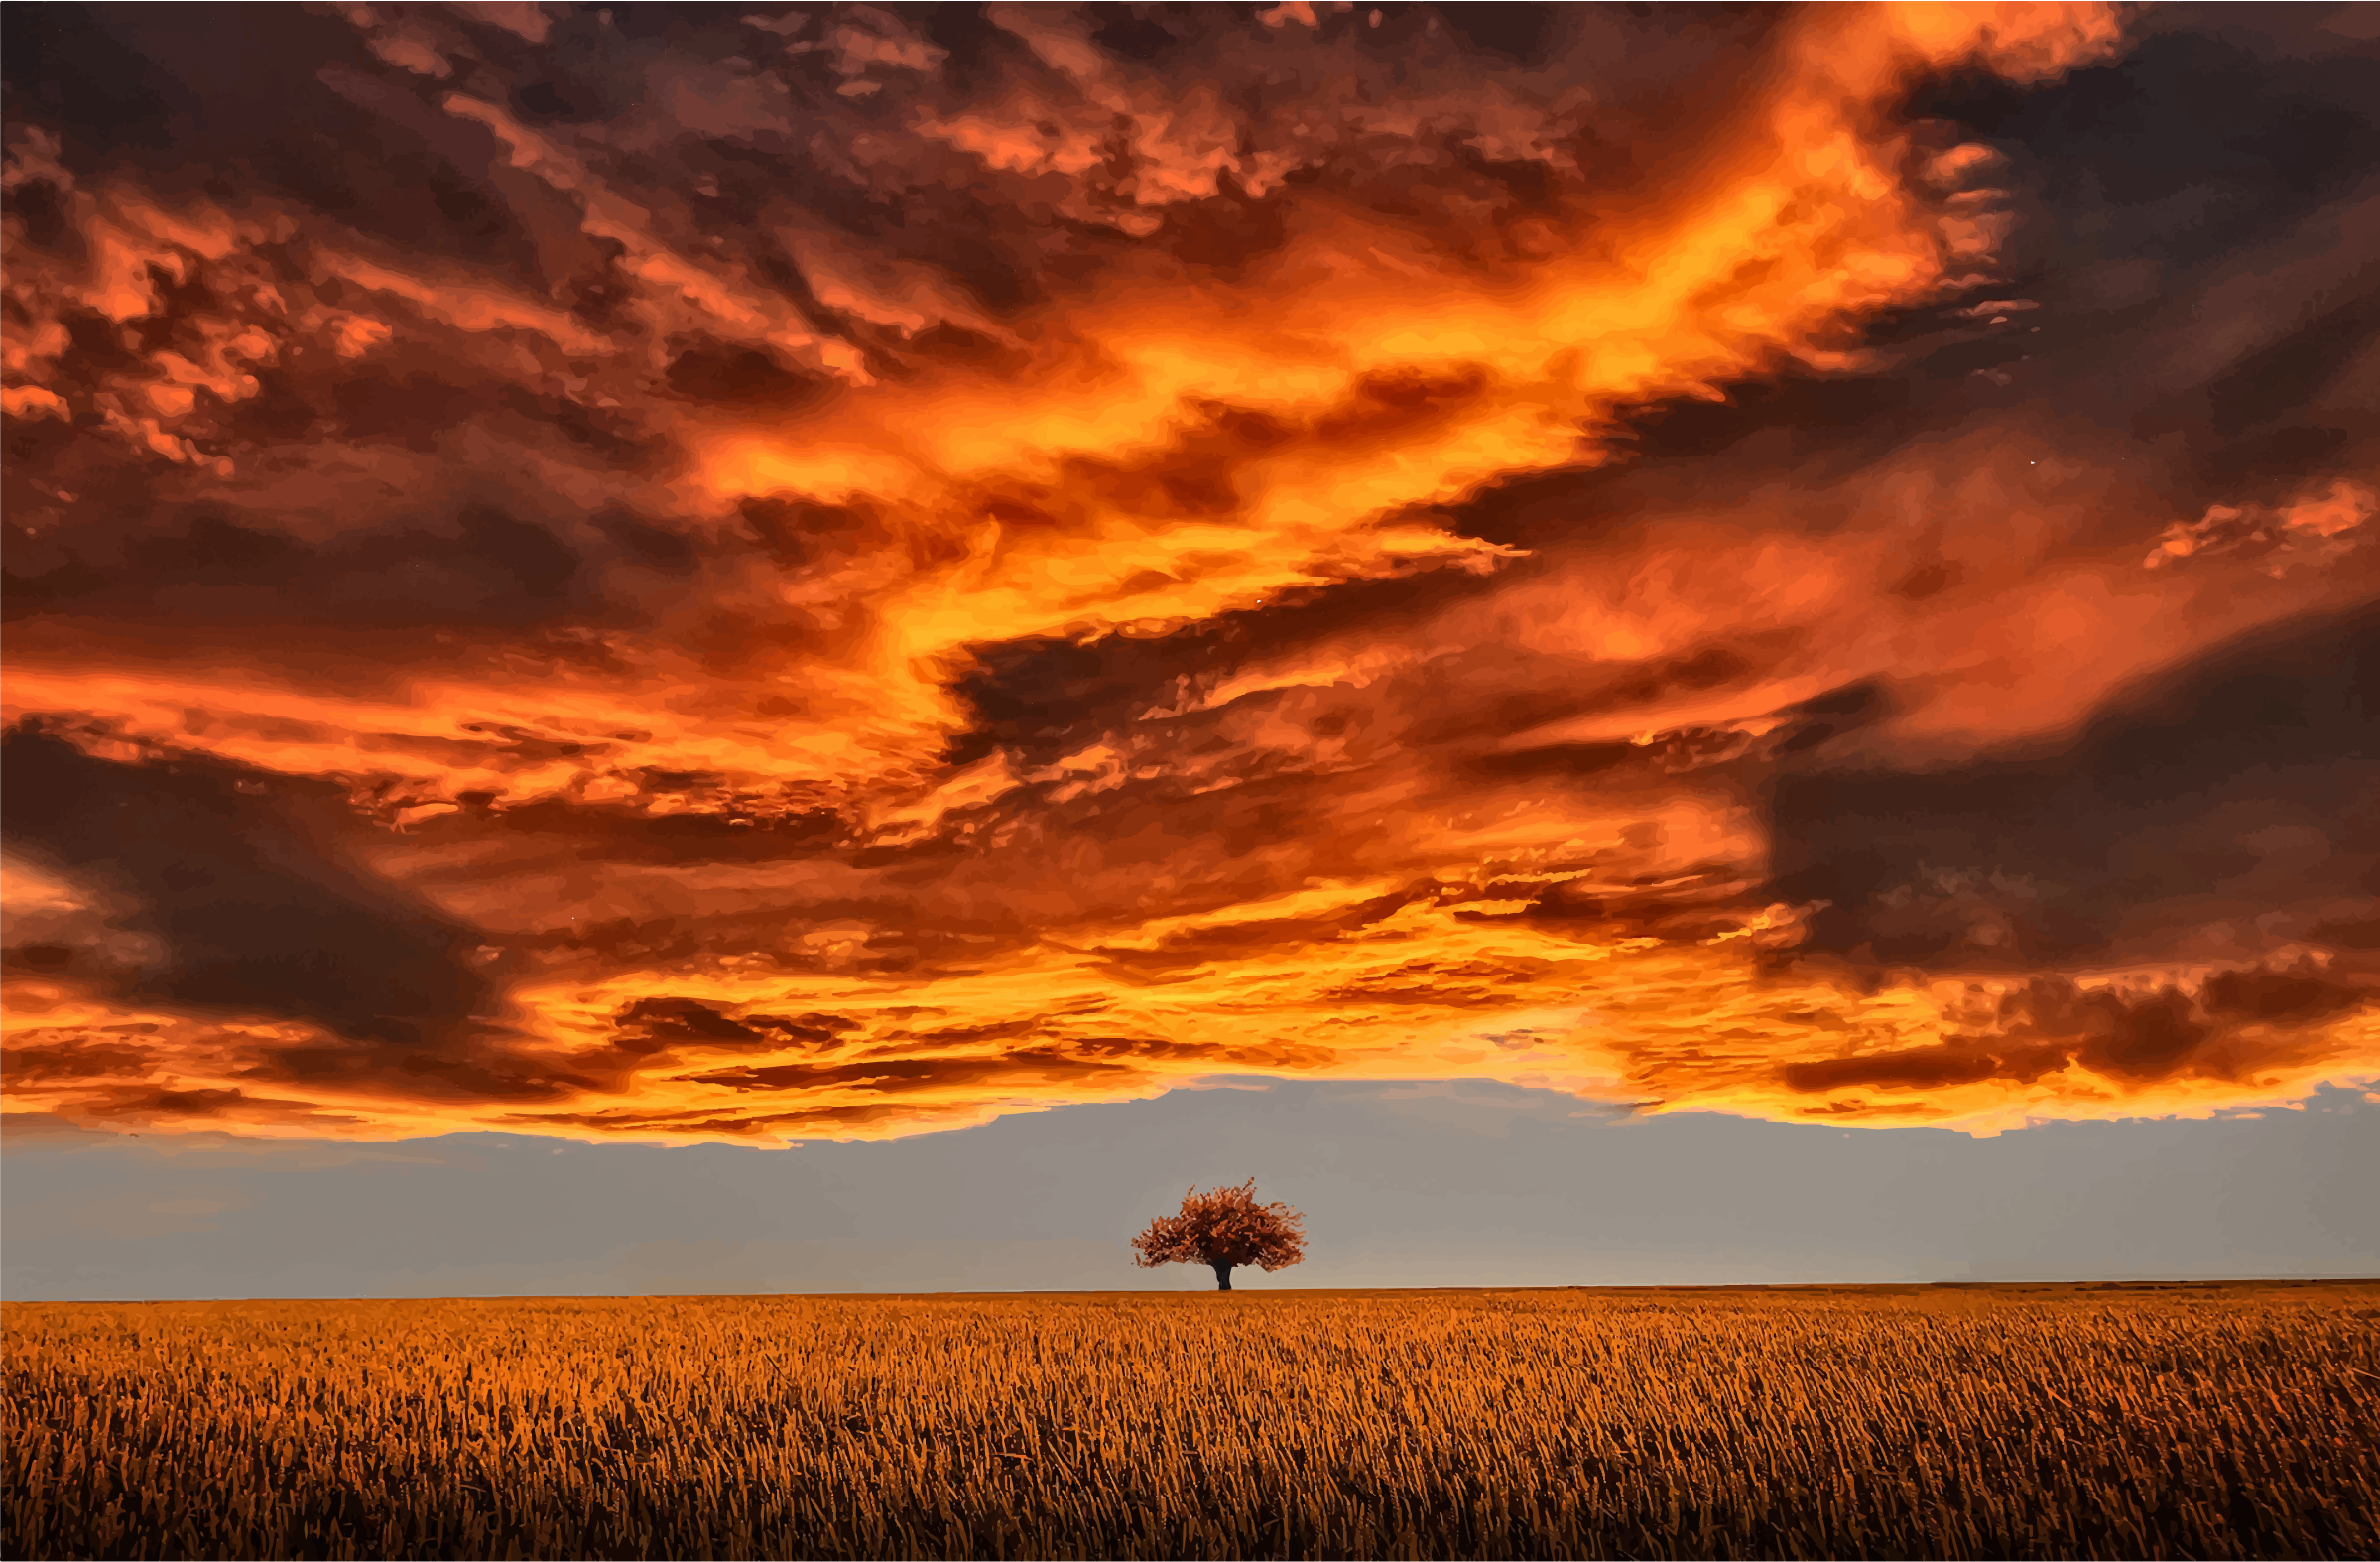 Lone Tree Under A Scorched Sky by GDJ